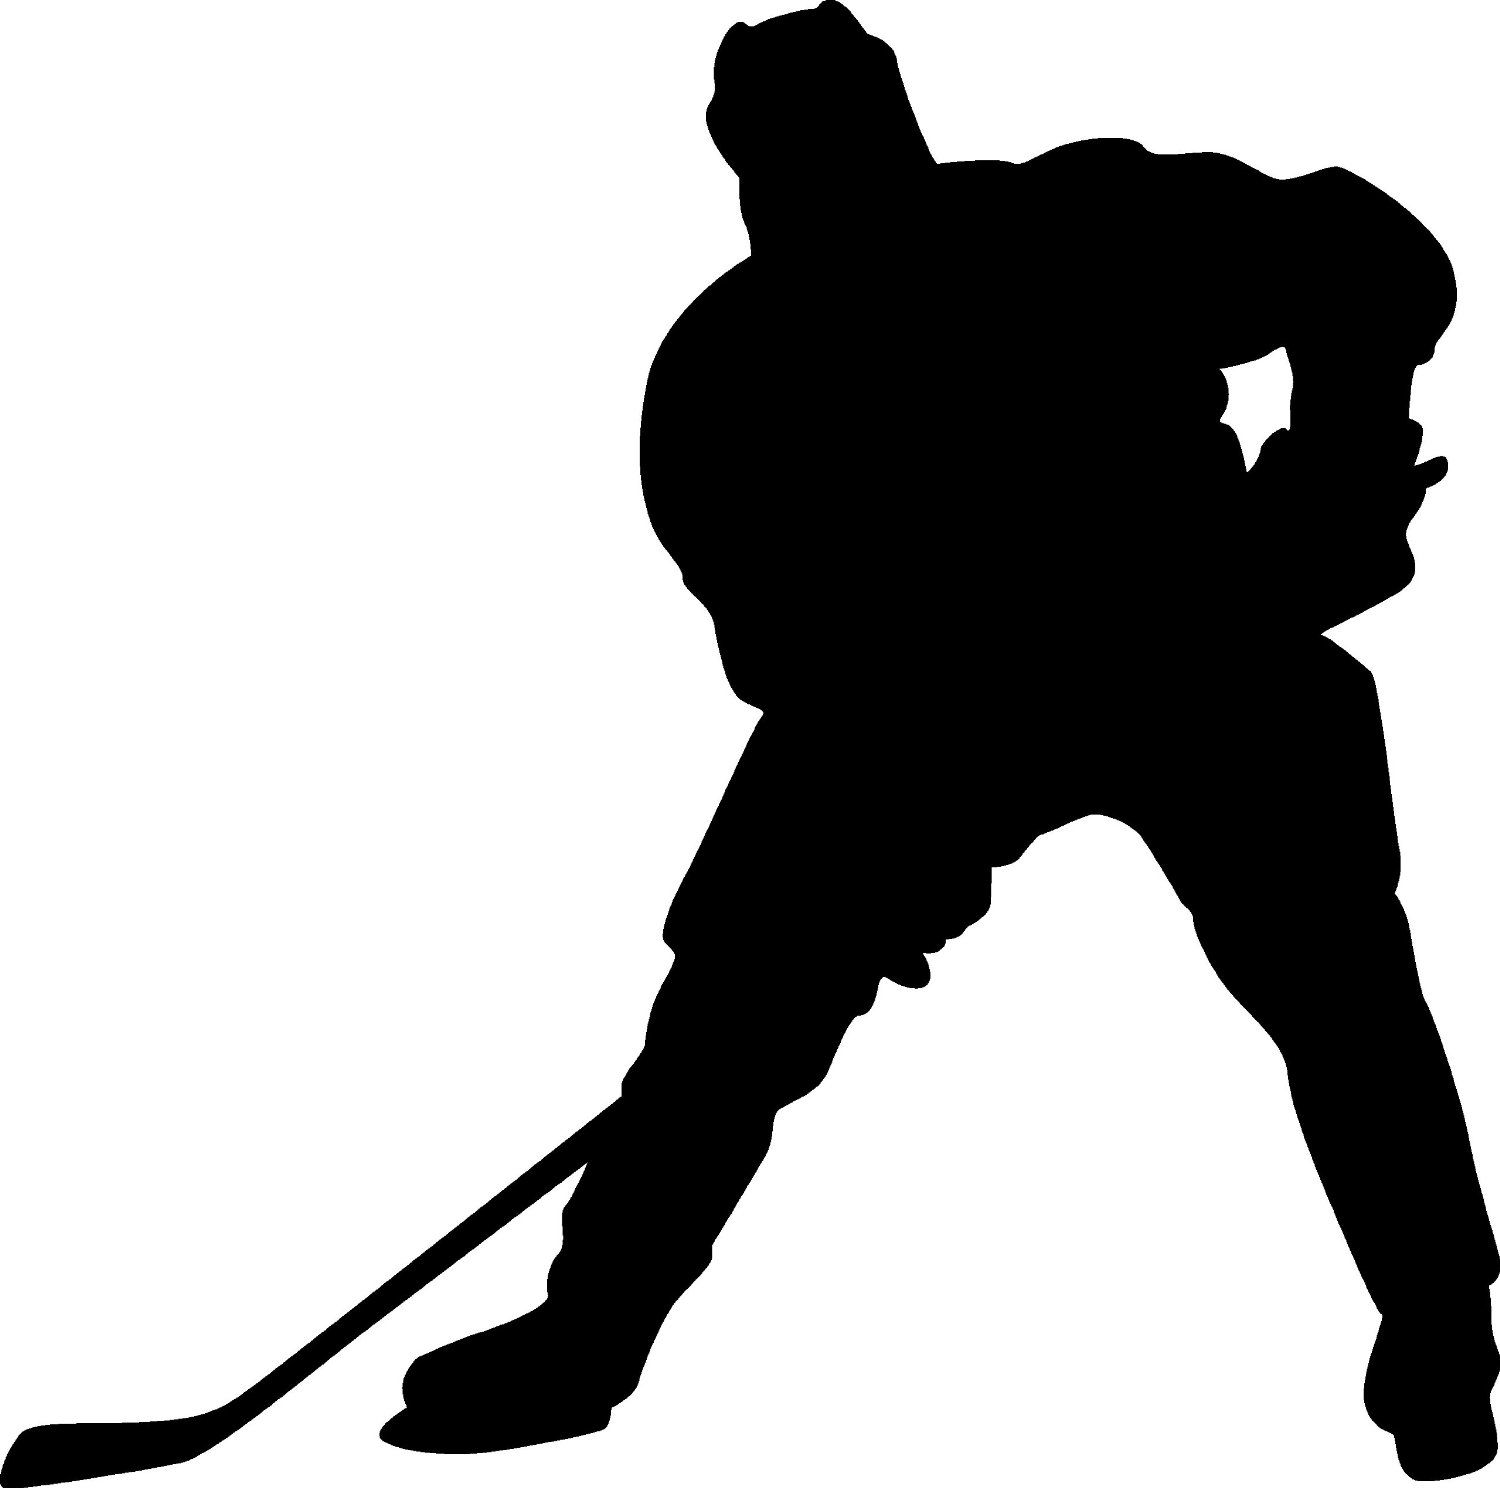 1500x1488 9 Hockey Player Silhouette Vector Images